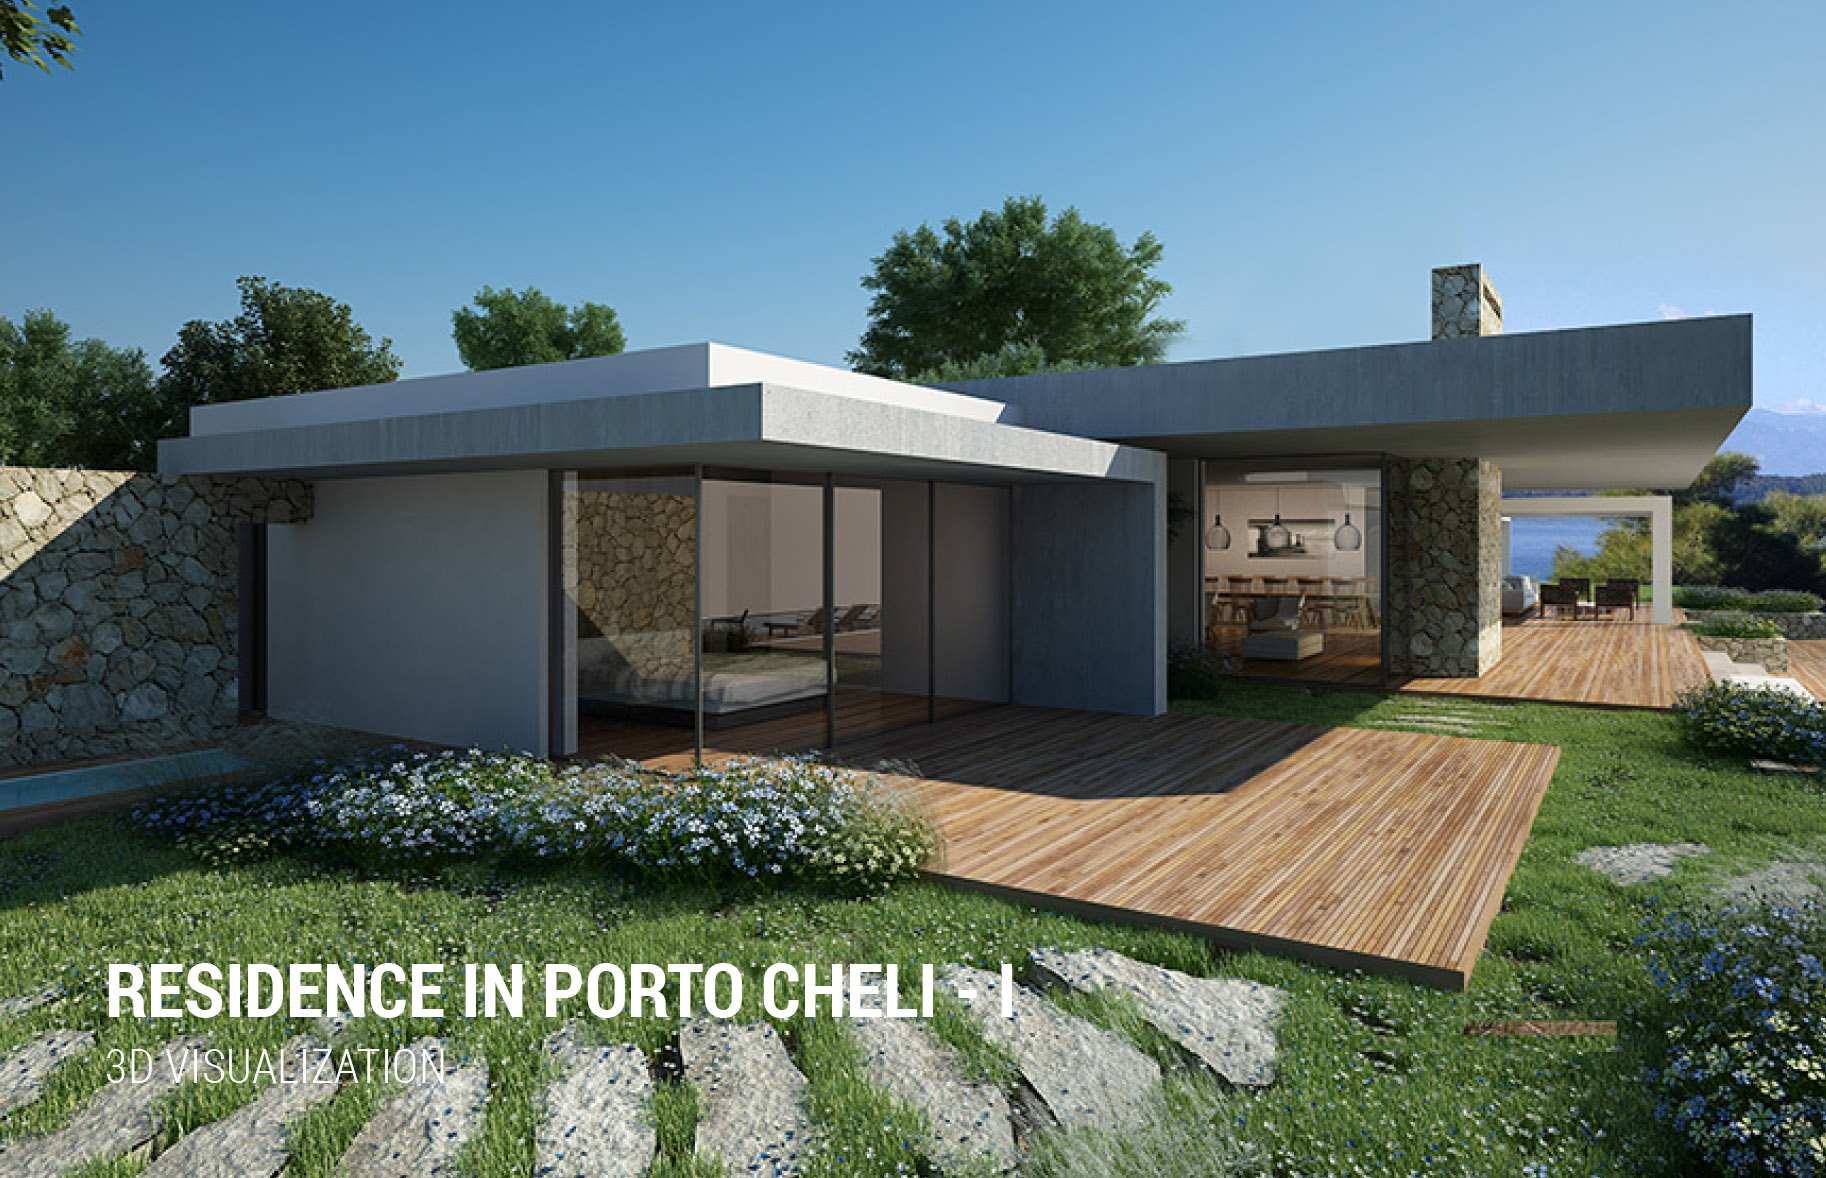 Schema Dimitra Chrona designer, creative director, architectural, 3D visualization, 3D Rendering, branding websites, digital, graphic design, interior design, real estate, luxury property, staging, museum, virtual, art, brochures, exhibitions, logotype, logo, Canada Quebec Montreal Athens Greece schema design porto cheli residence i large.jpg